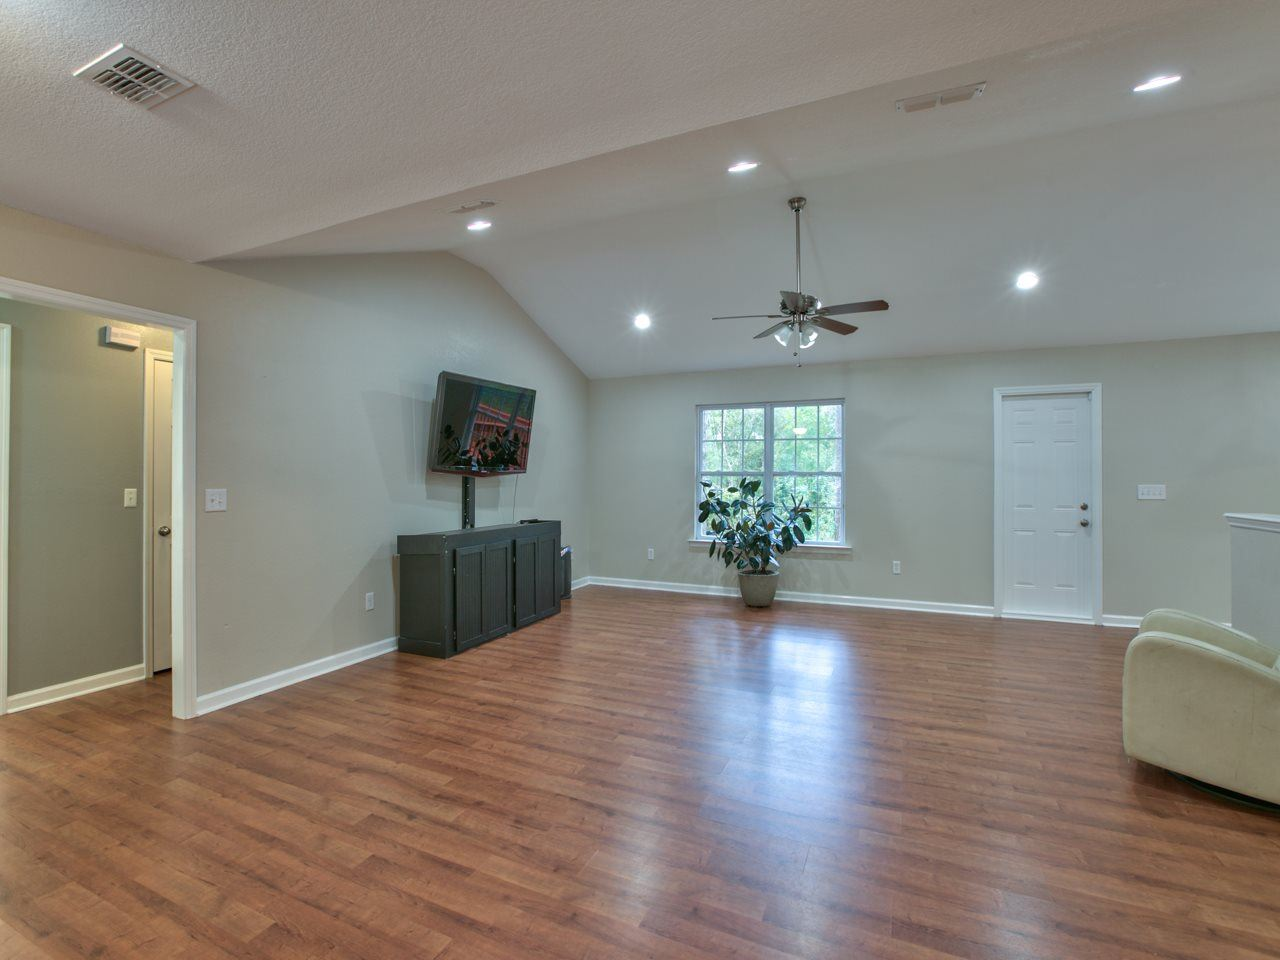 Photo of 11601 Aurora Cove, TALLAHASSEE, FL 32310 (MLS # 318715)